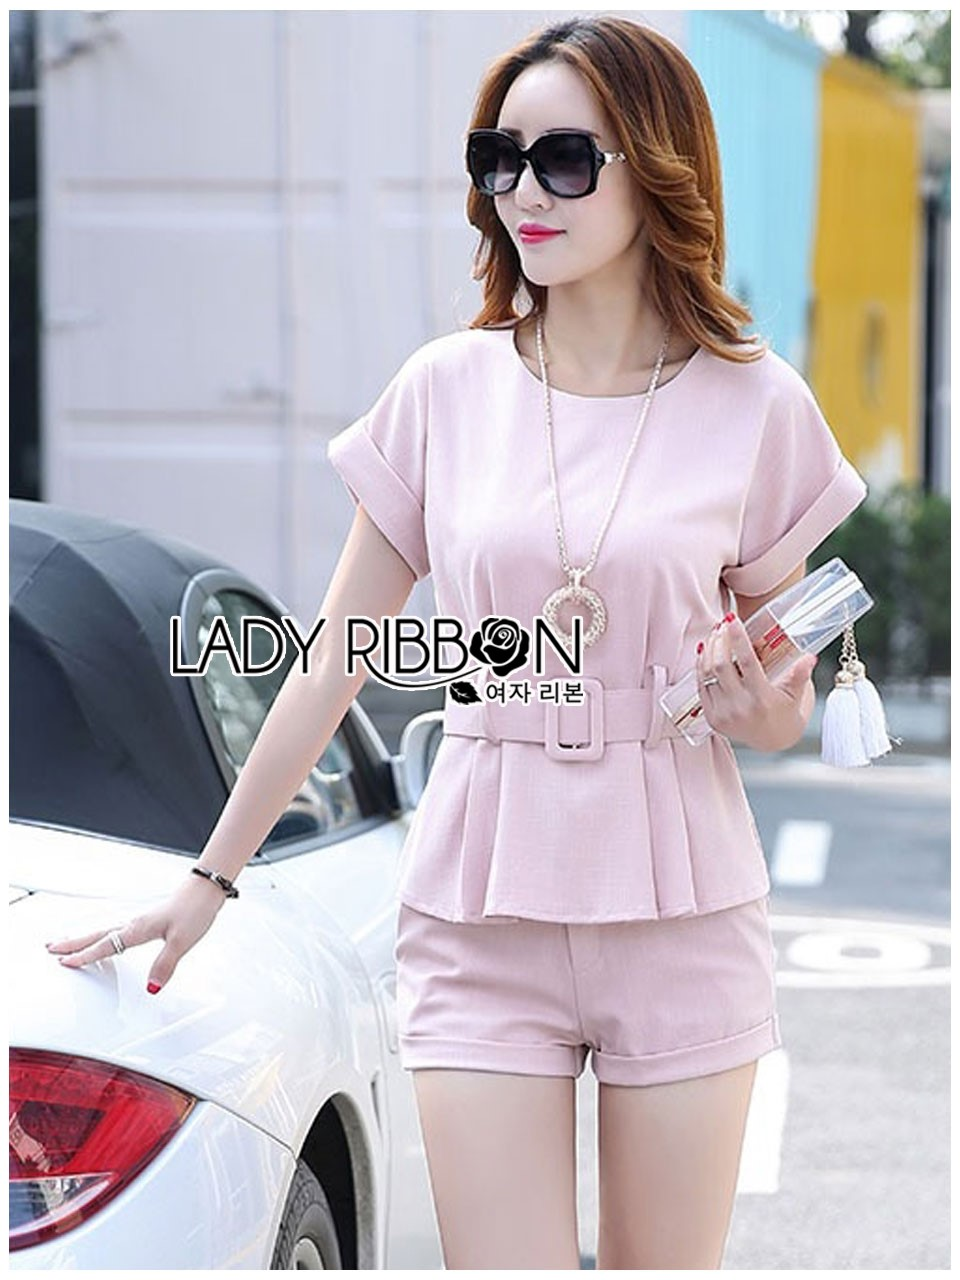 Lady Ribbon's Made Lady Amanda Smart Minimal Belted Top and Shorts Set สีชมพู